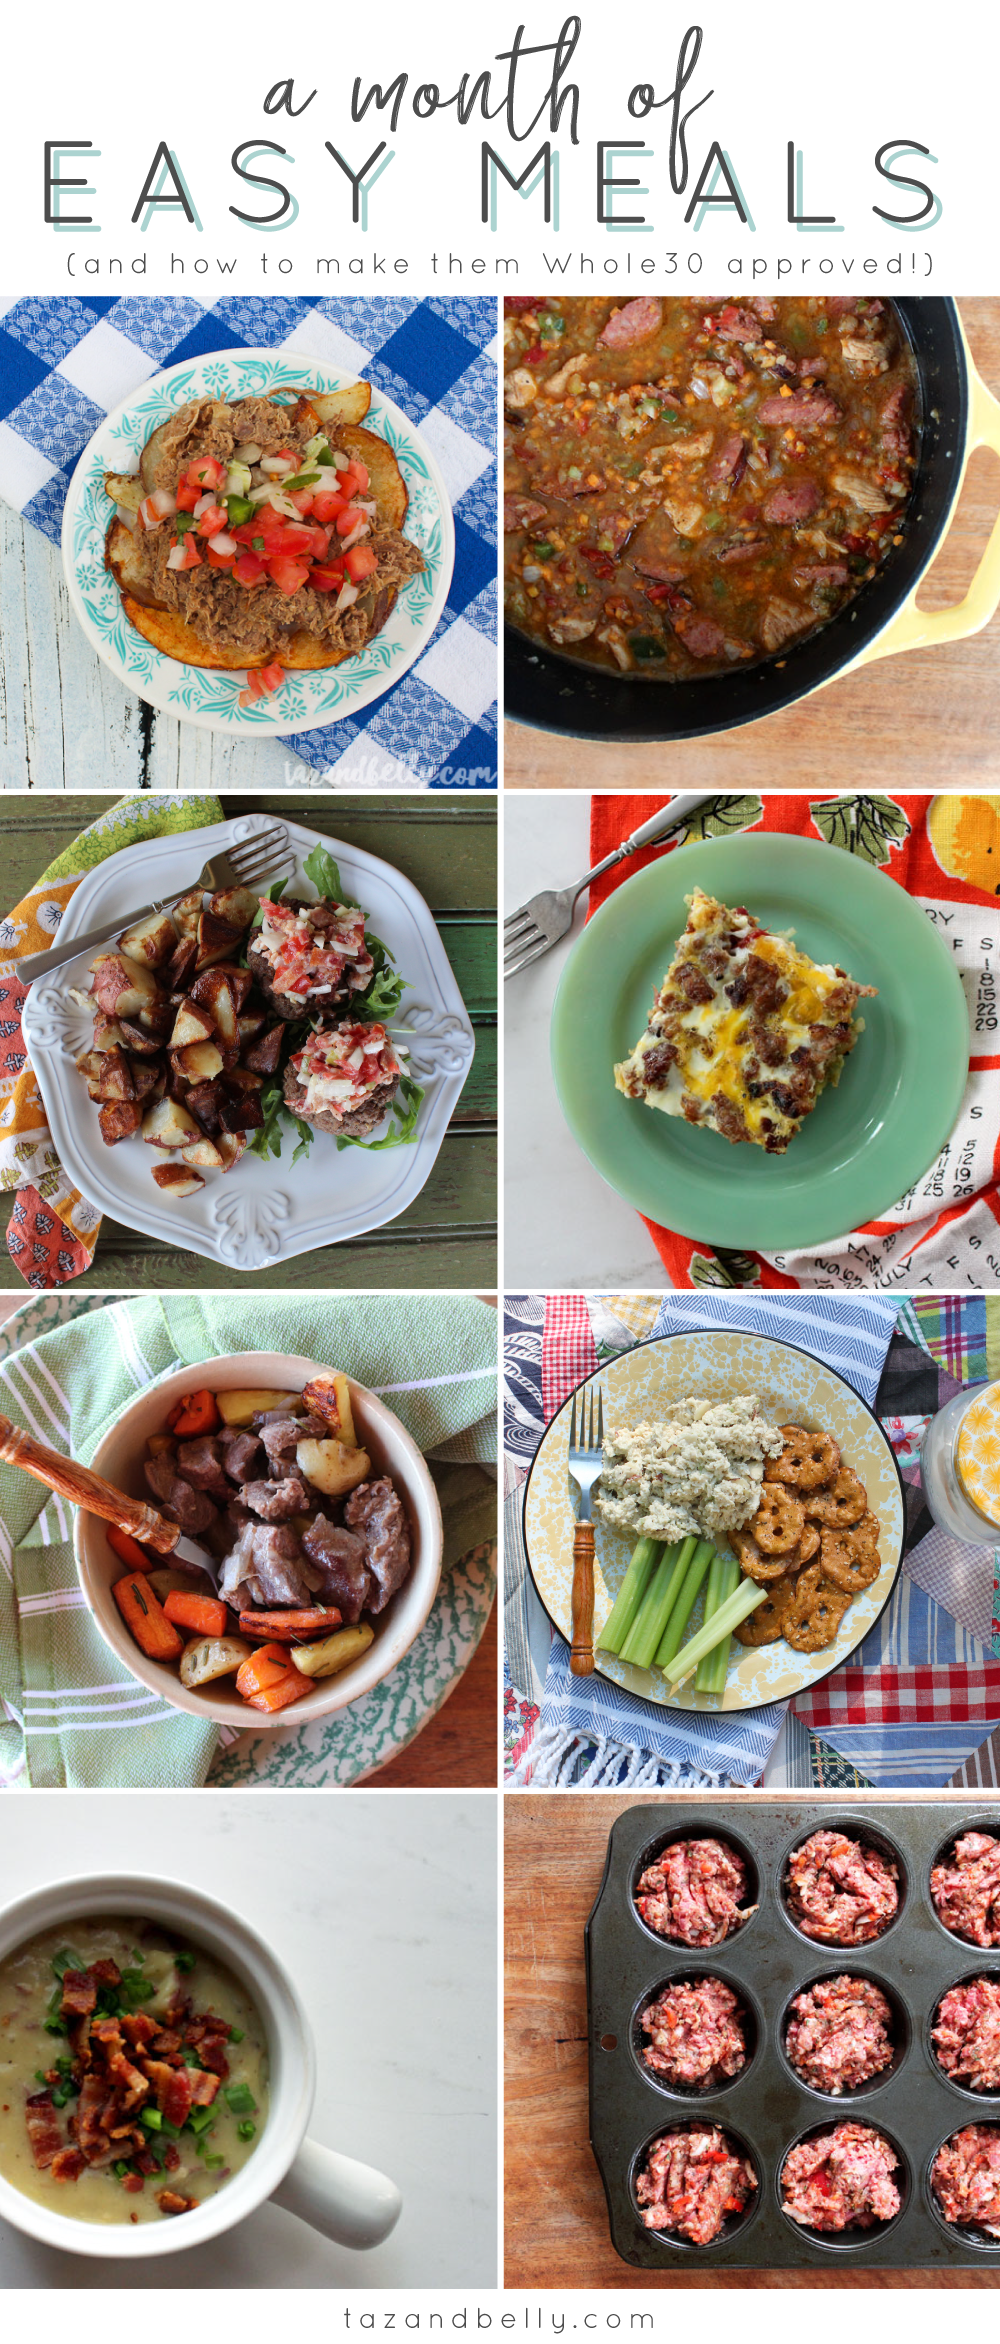 A Month of Whole30 Meals: This meal plan includes twenty one recipes, leaving plenty of room for takeout, leftovers, and new favorites. With sixteen recipes that can easily be Whole30 compliant, you'll never have to look for meal ideas again! | tazandbelly.com